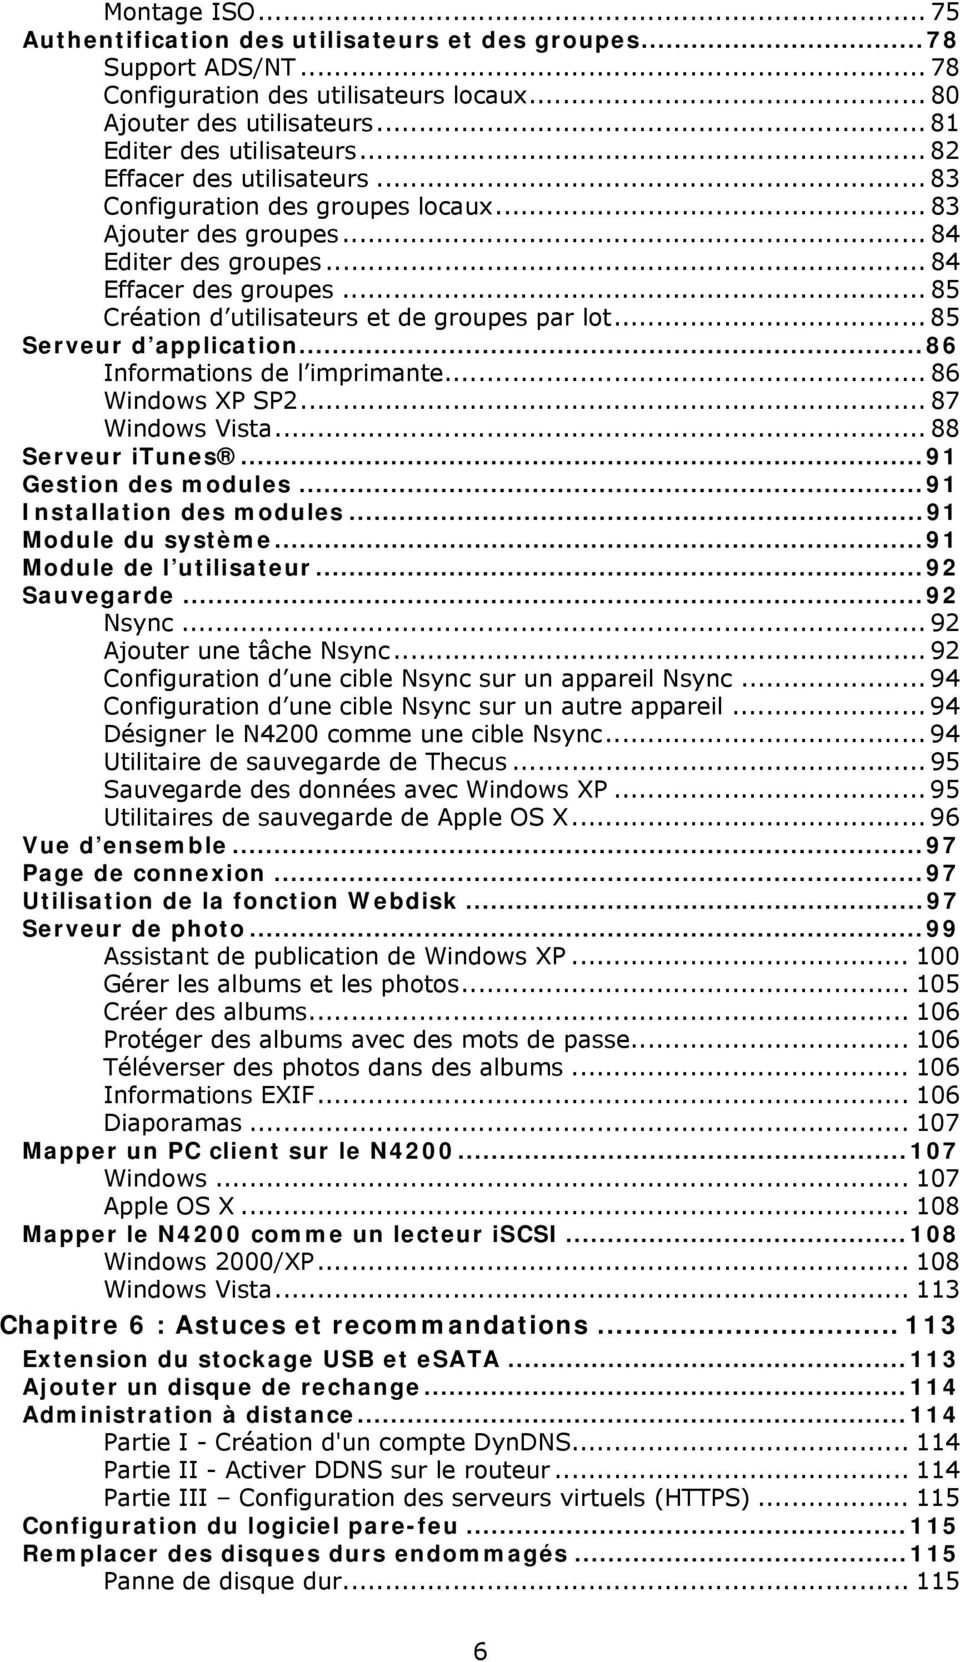 .. 85 Serveur d application...86 Informations de l imprimante... 86 Windows XP SP2... 87 Windows Vista... 88 Serveur itunes...91 Gestion des modules...91 Installation des modules...91 Module du système.